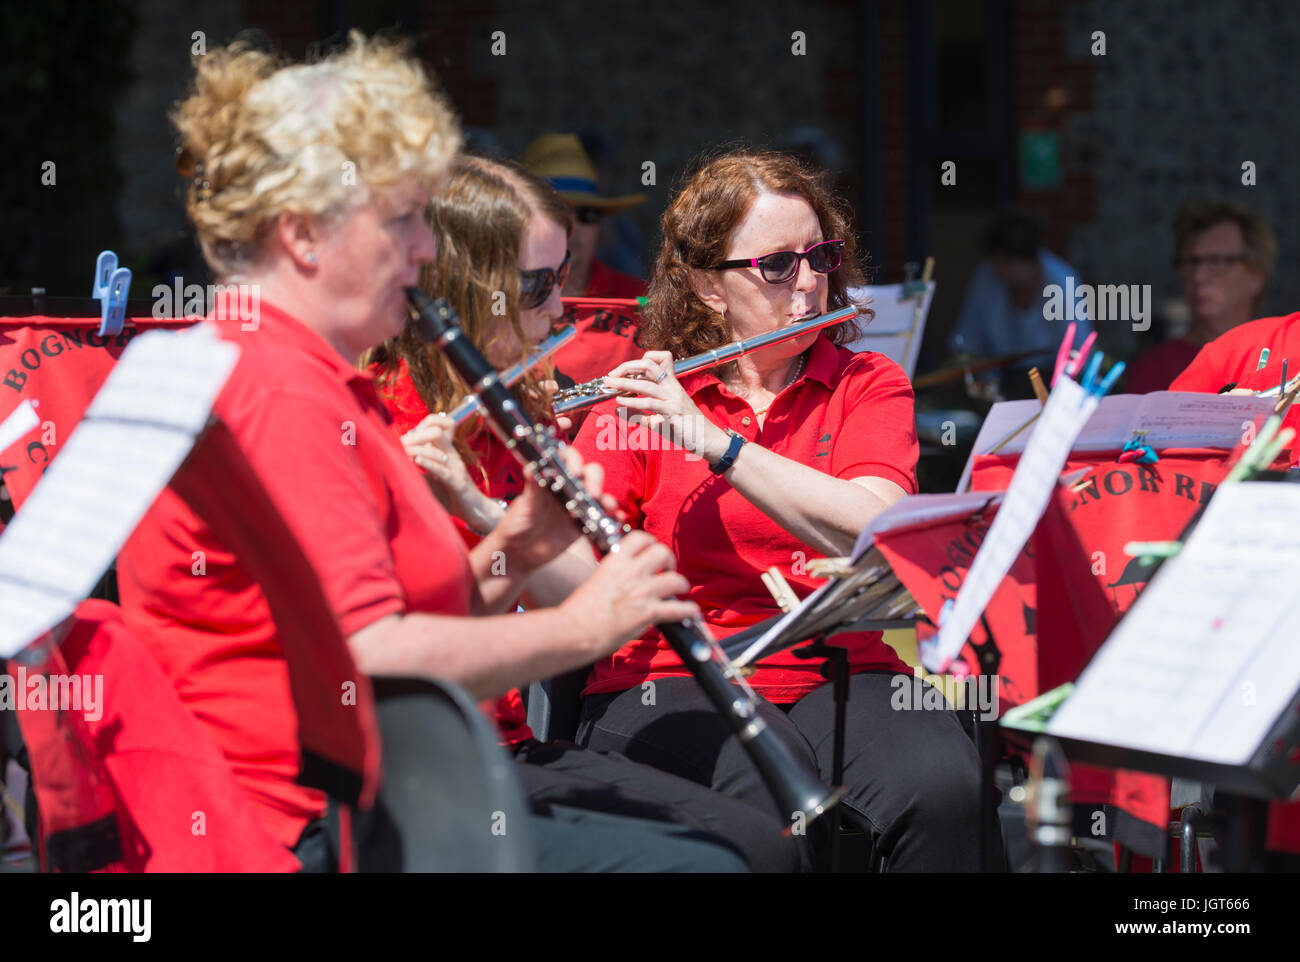 Woman playing a flute with the Bognor Regis Concert Band at a Summer charity event. Female flautist. - Stock Image